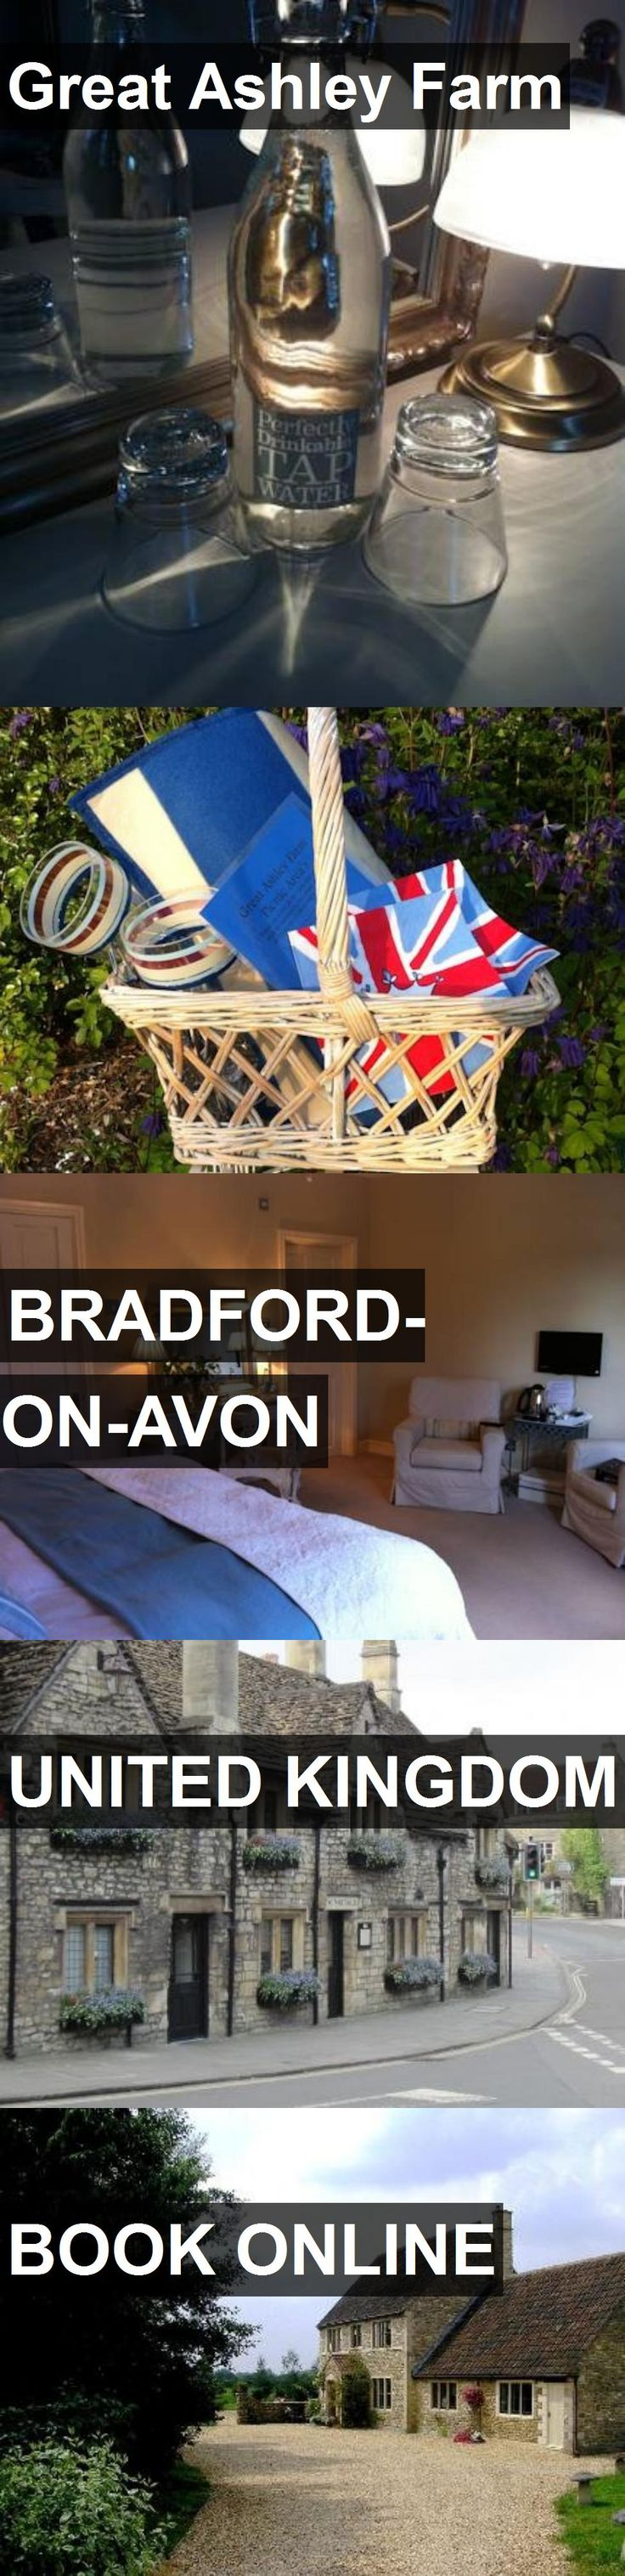 Hotel Great Ashley Farm in Bradford-on-Avon, United Kingdom. For more information, photos, reviews and best prices please follow the link. #UnitedKingdom #Bradford-on-Avon #travel #vacation #hotel